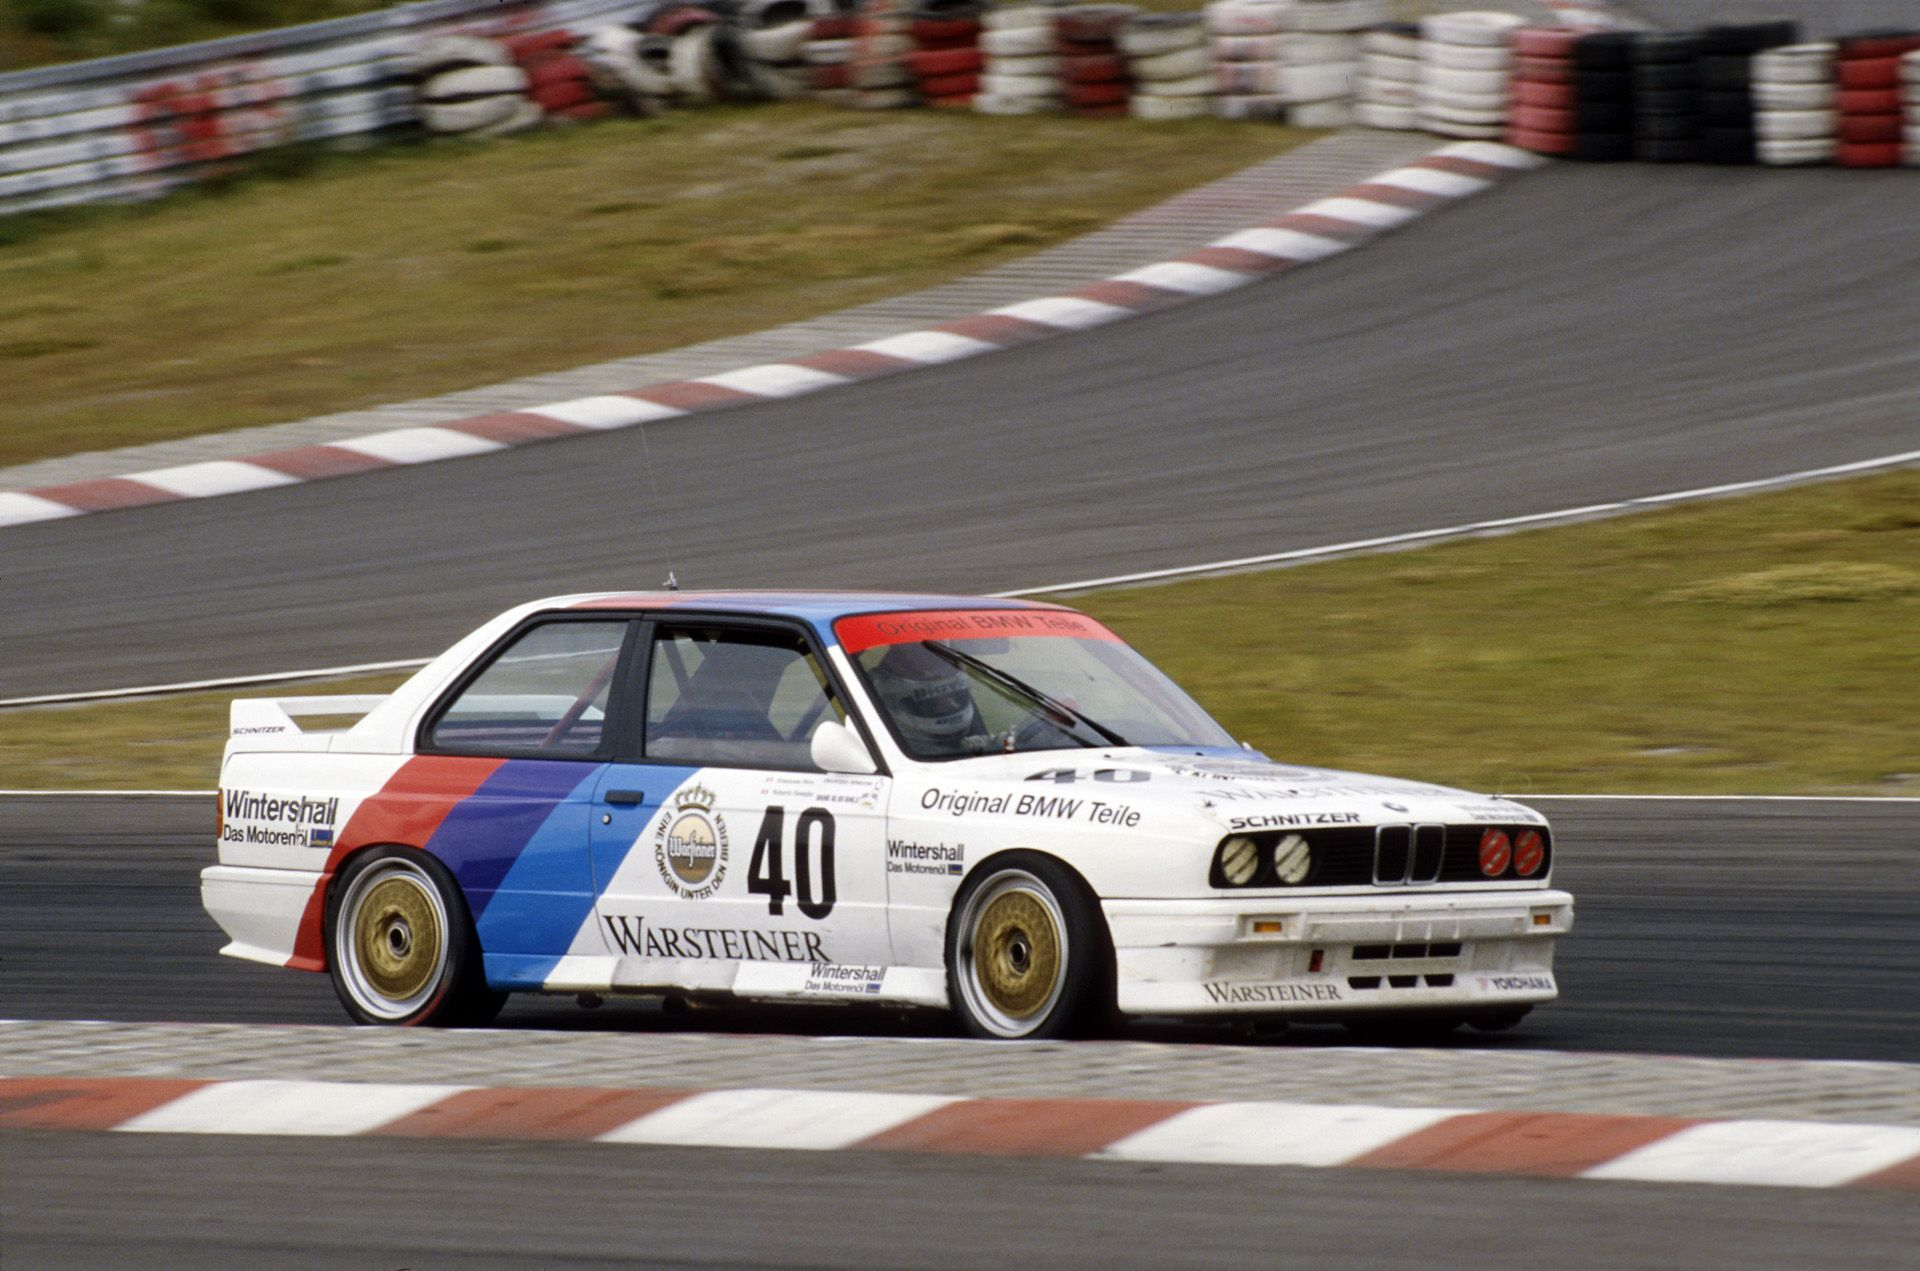 40 years of bmw M cars | BMW M Cars | Pinterest | 40 years, BMW and Cars